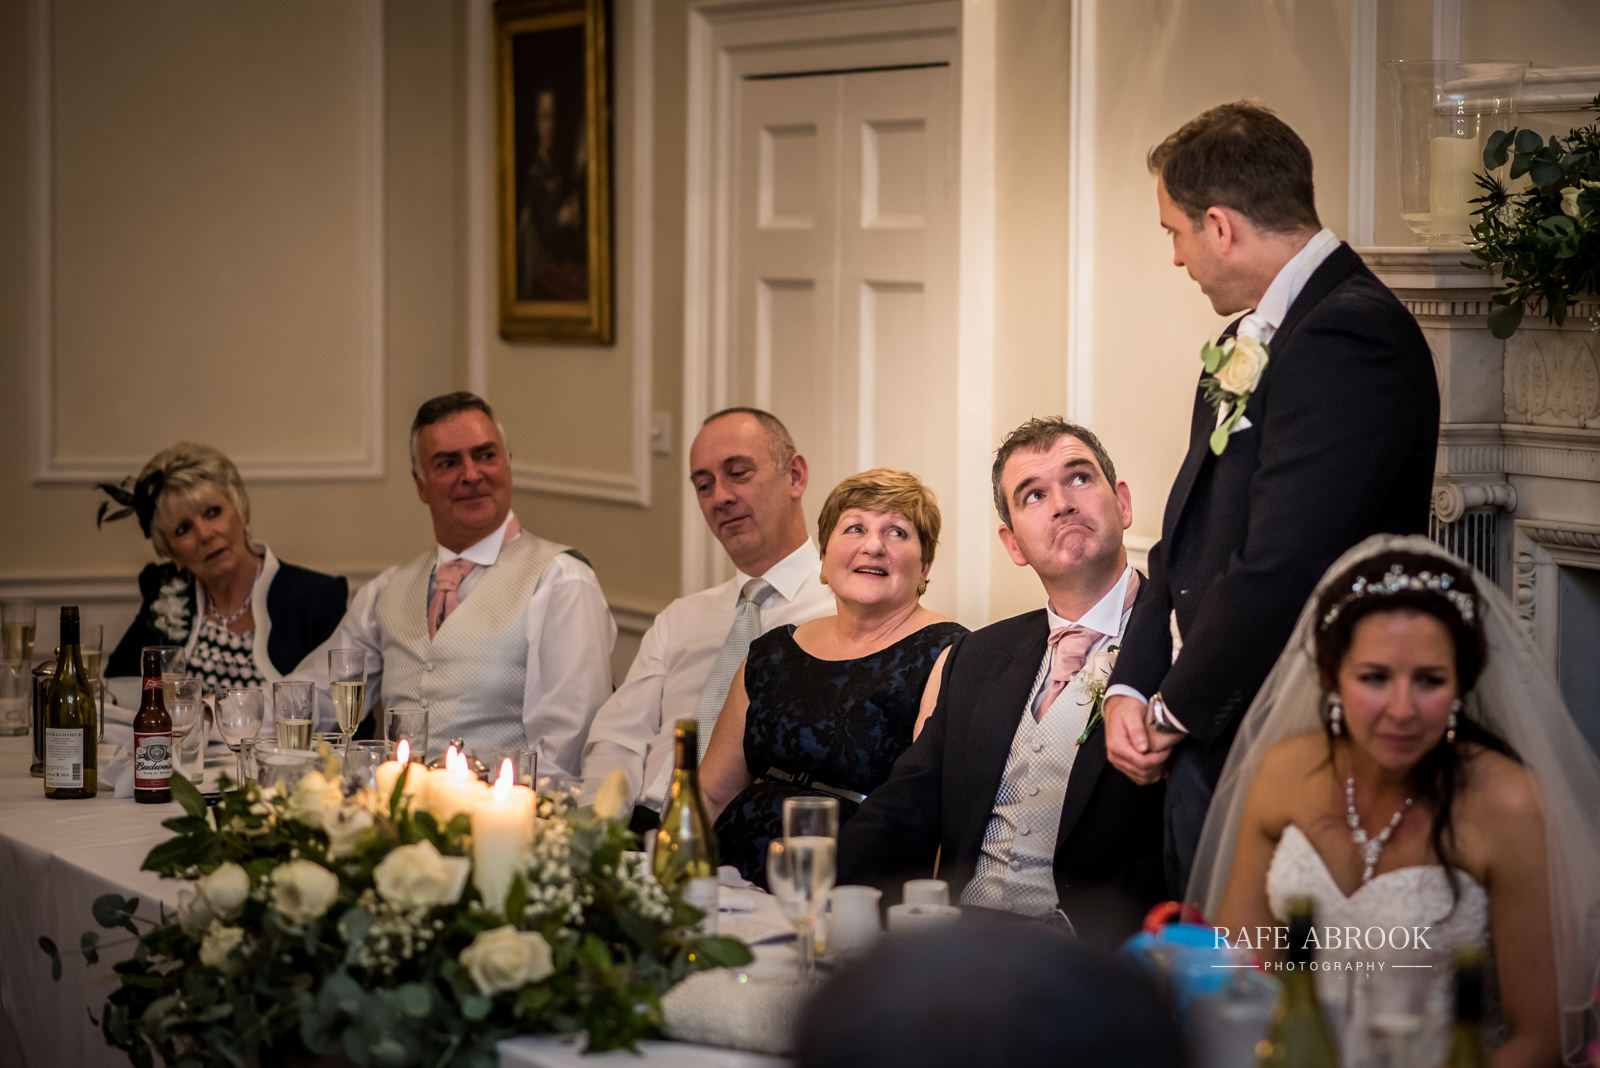 goldsborough hall wedding harrogate knaresborough yorkshire hertfordshire wedding photographer-1369.jpg